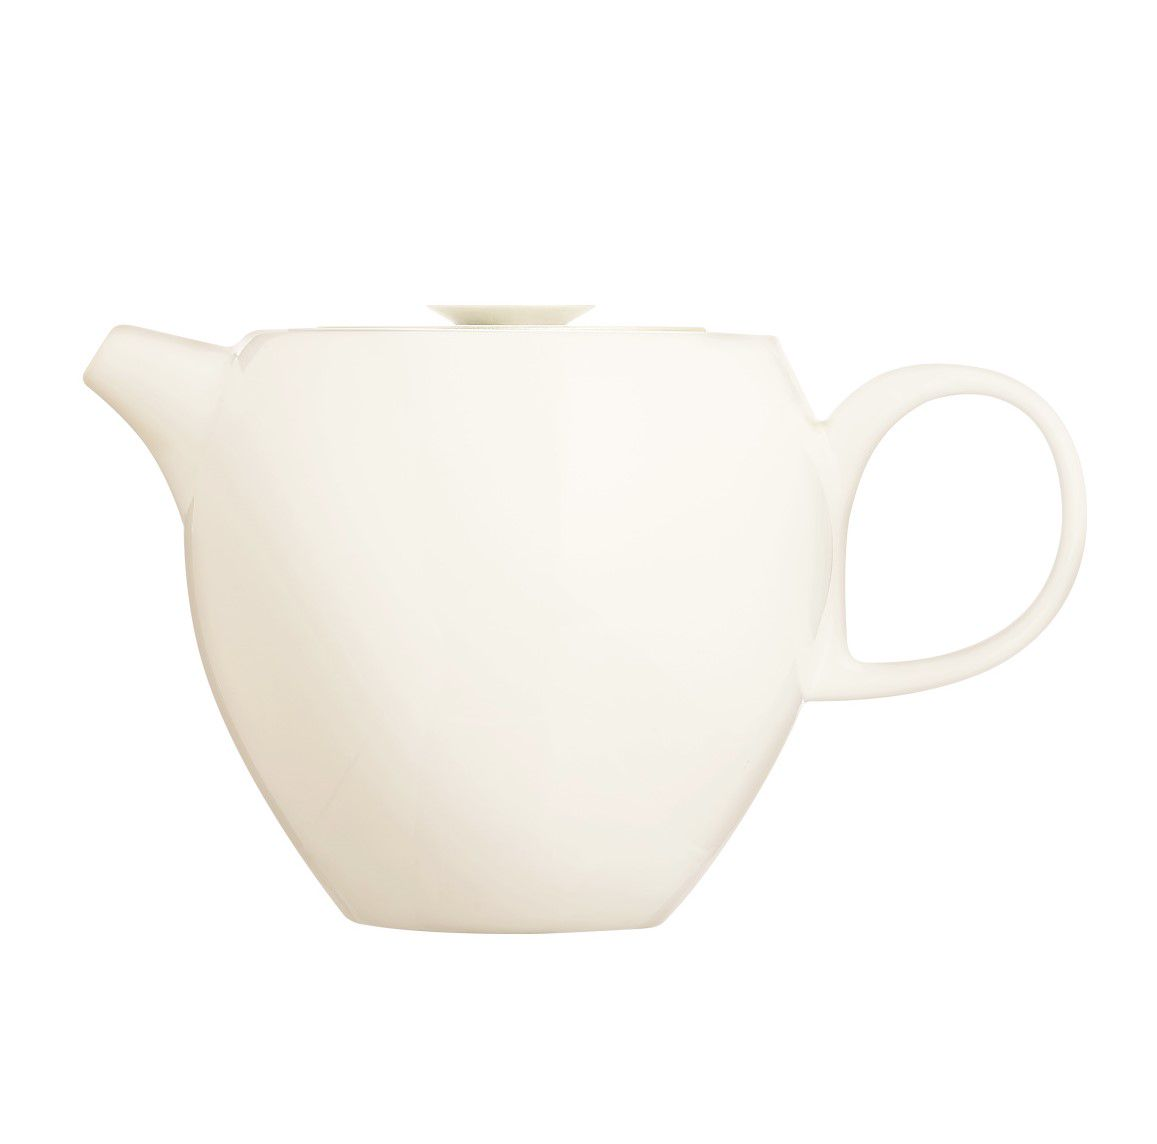 L9619 Nectar Theepot